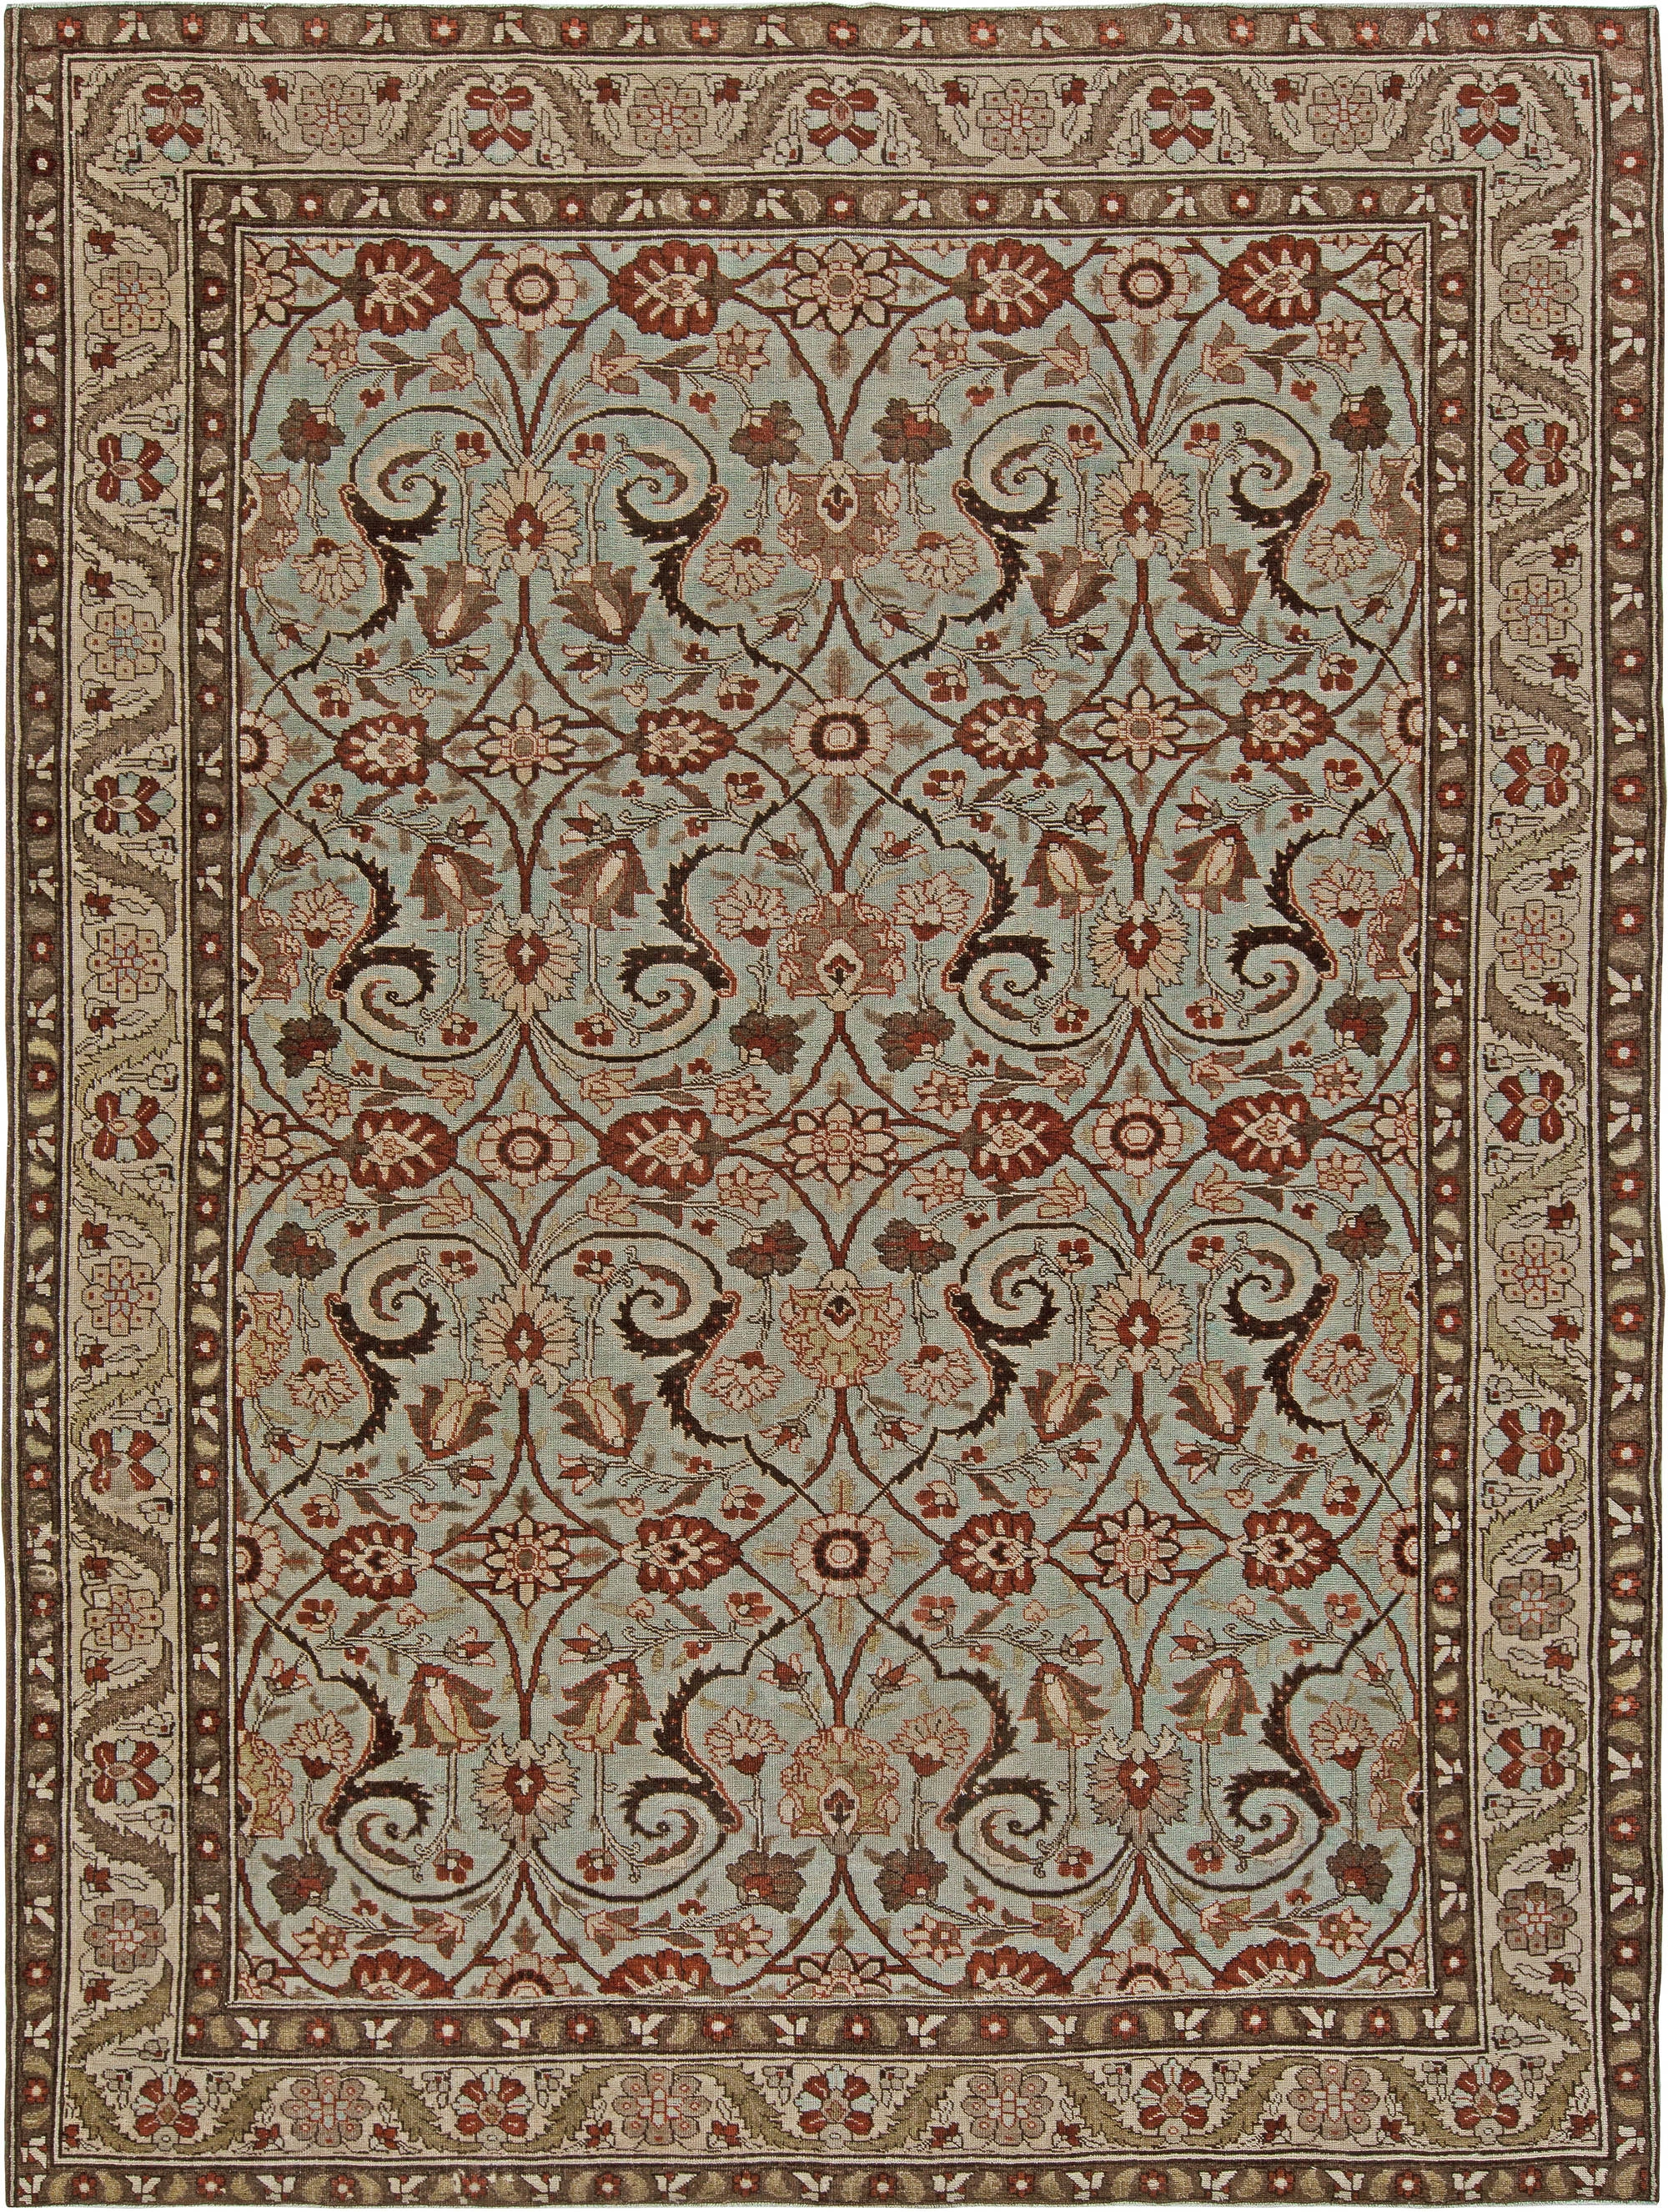 Antique Persian Rugs And Antique Oriental Rugs Pertaining To Oriental Persian Rugs (Image 2 of 15)